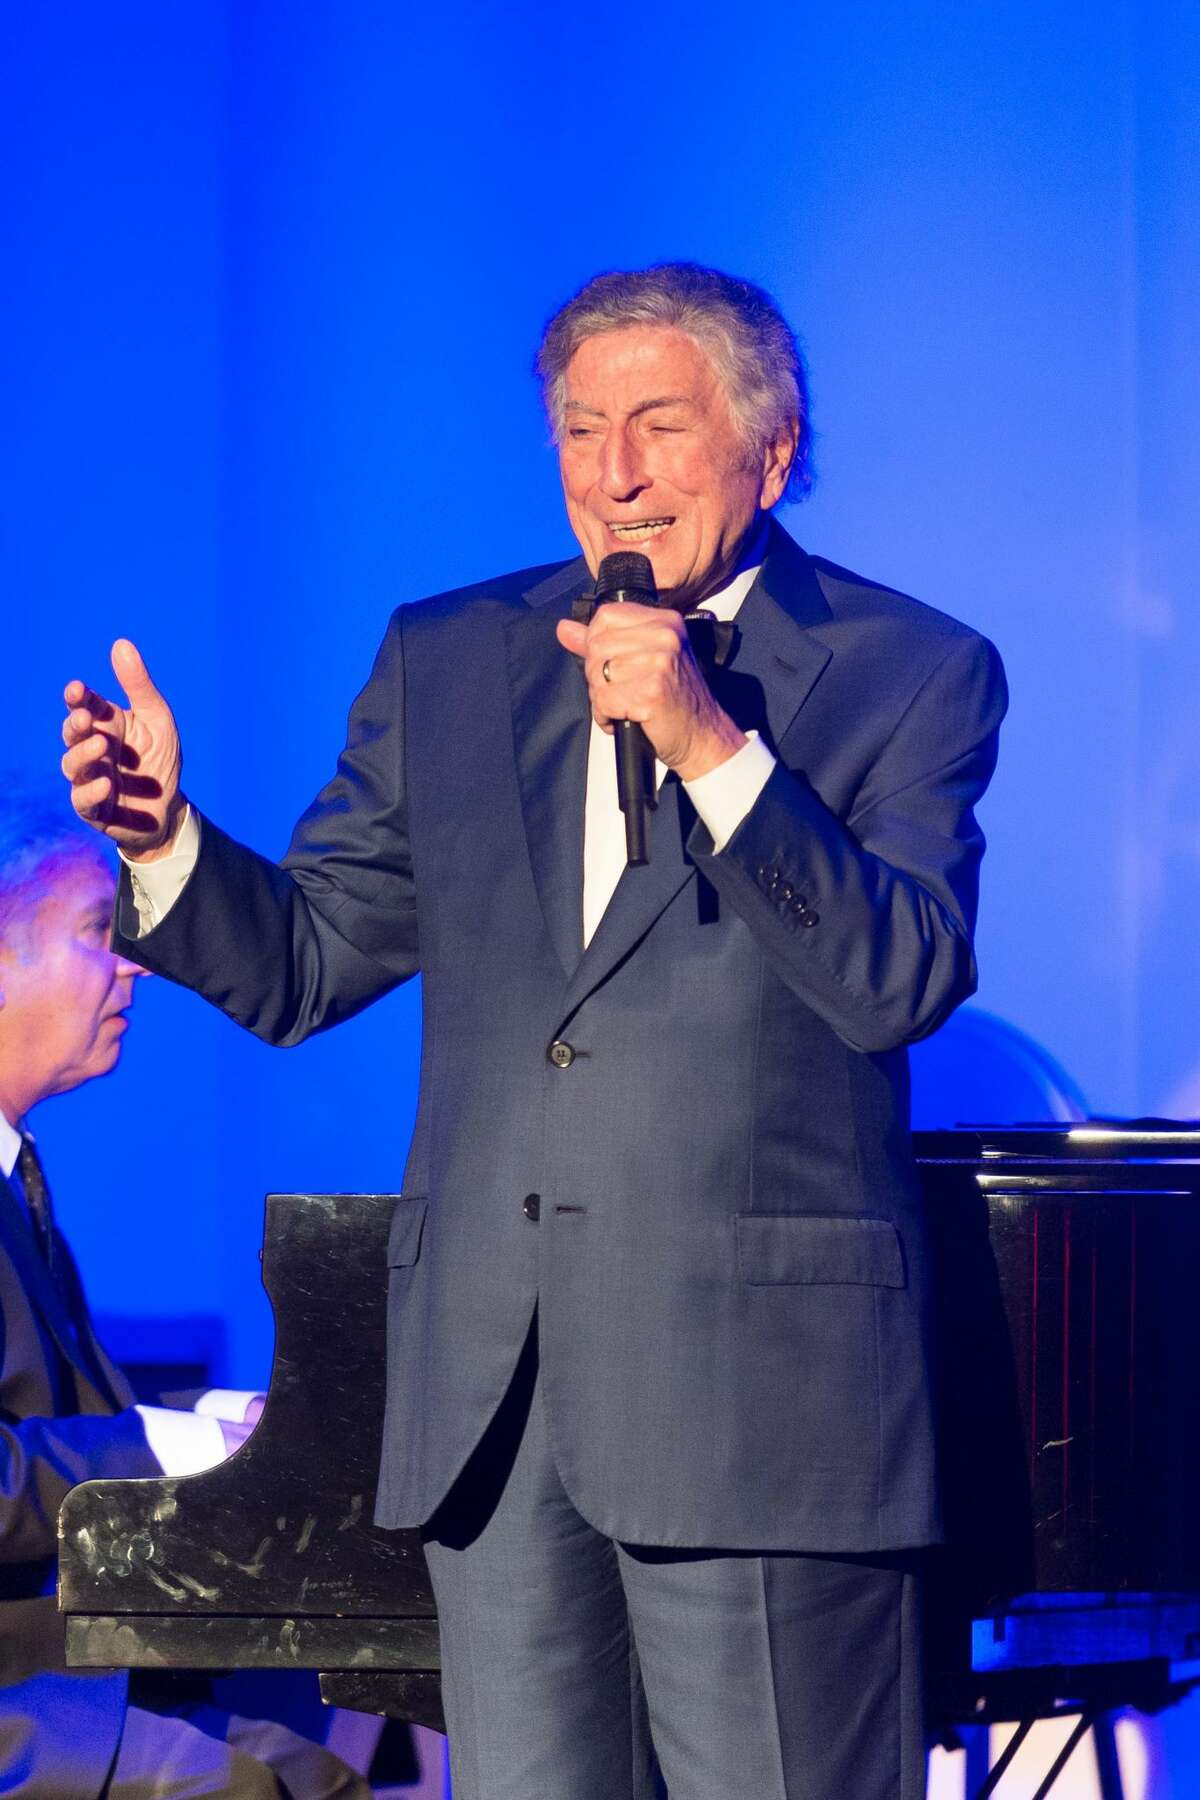 On Saturday, Aug. 20, Tony Bennett returned to the Fairmont San Francisco's famed Venetian Room stage, where he first performed I Left My Heart in San Francisco in public in 1961, for a benefit dinner and concert.